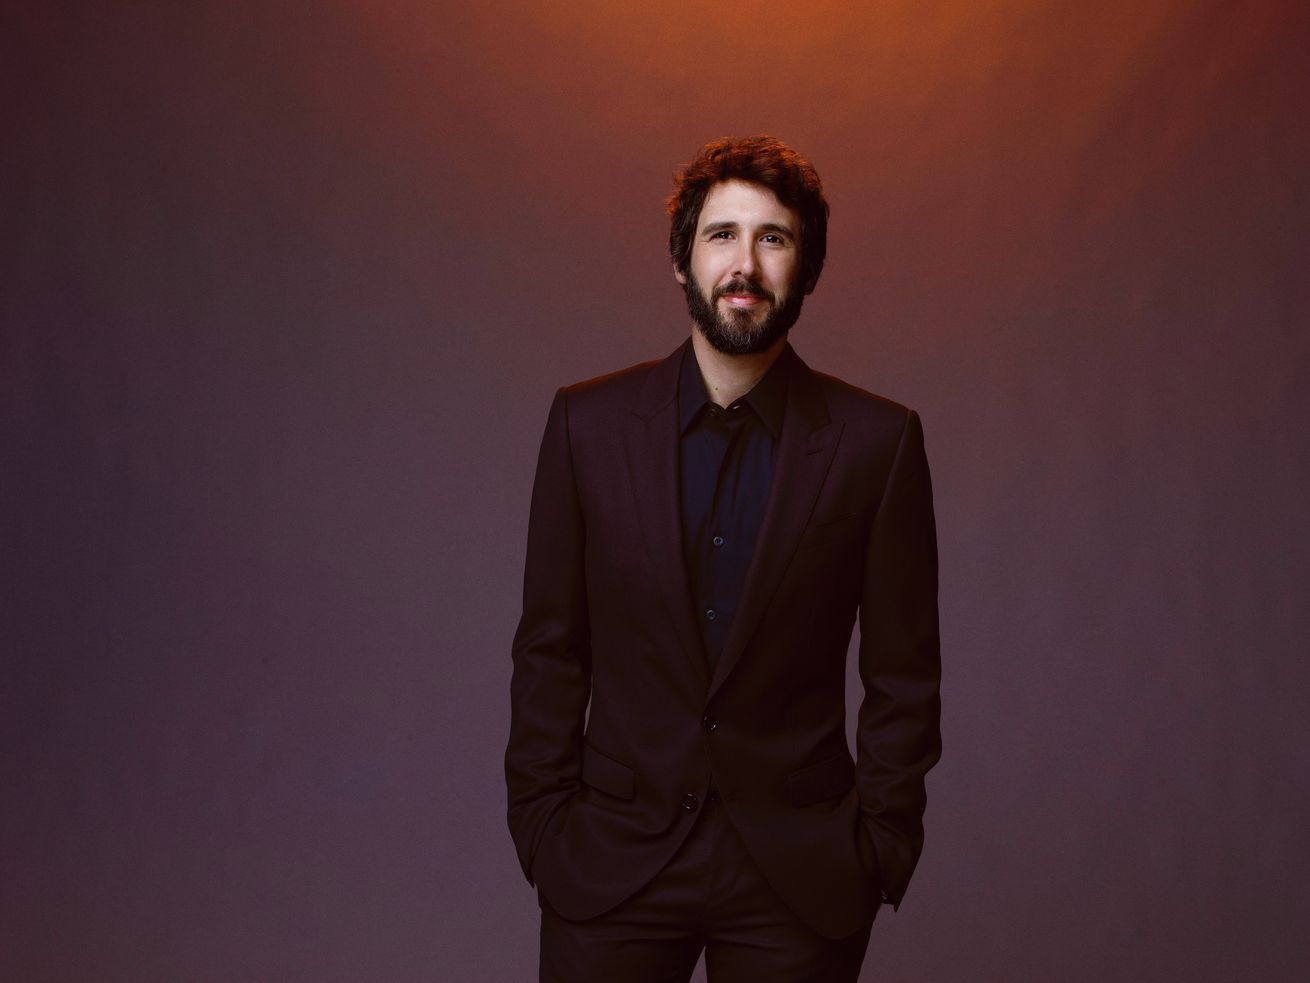 'Now is not the time for silence': Inside Josh Groban's musical awakening during the pandemic